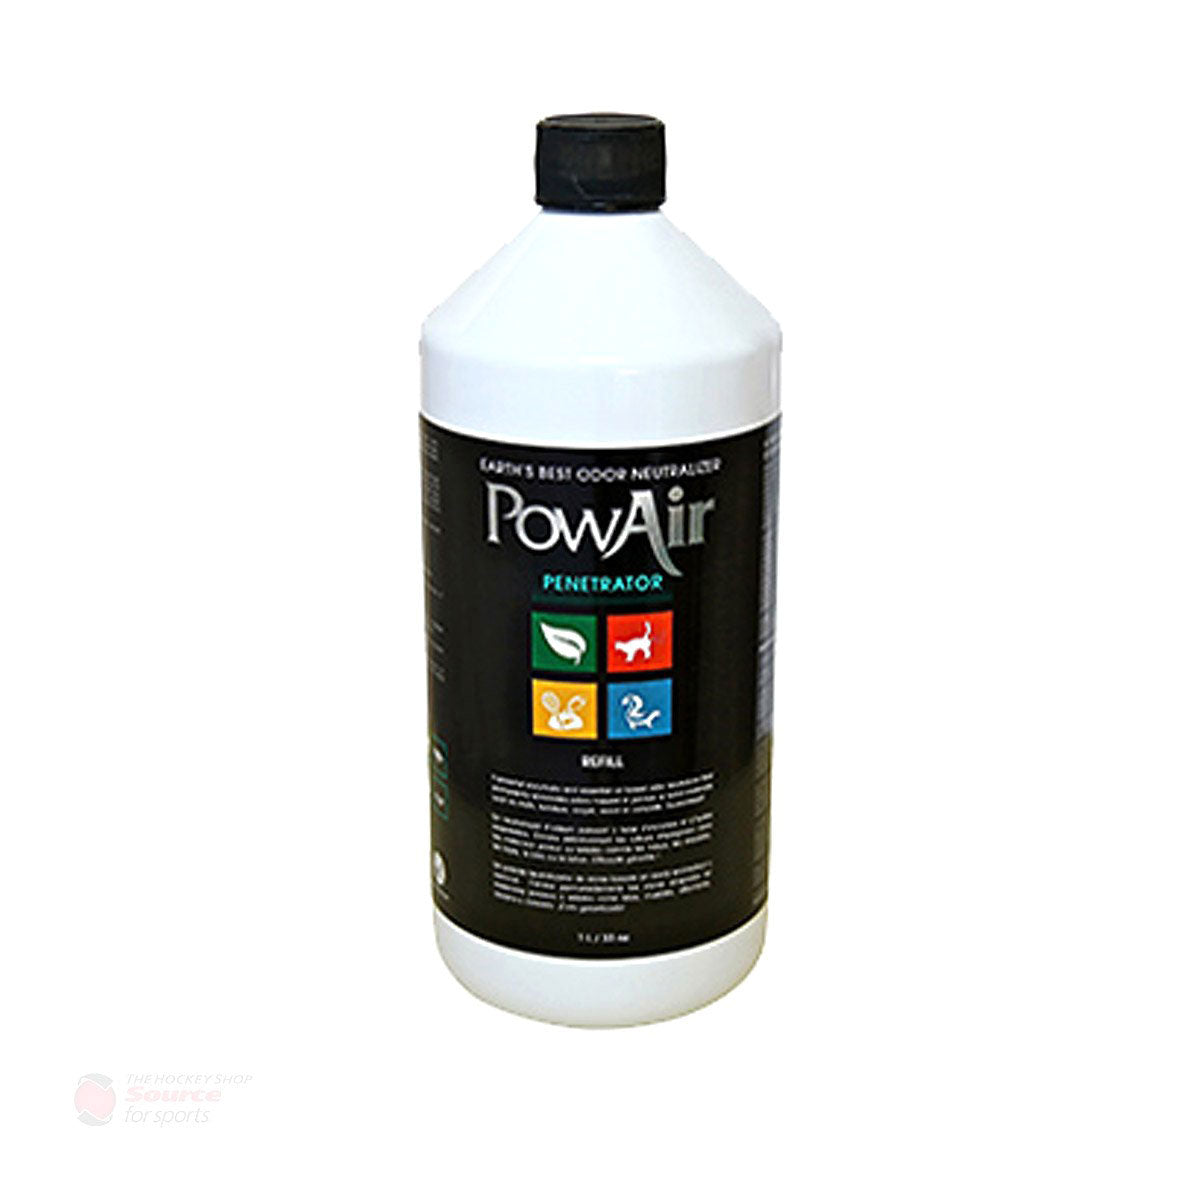 Pow-Air Penetrator Deodorizer Spray - Refill Bottle